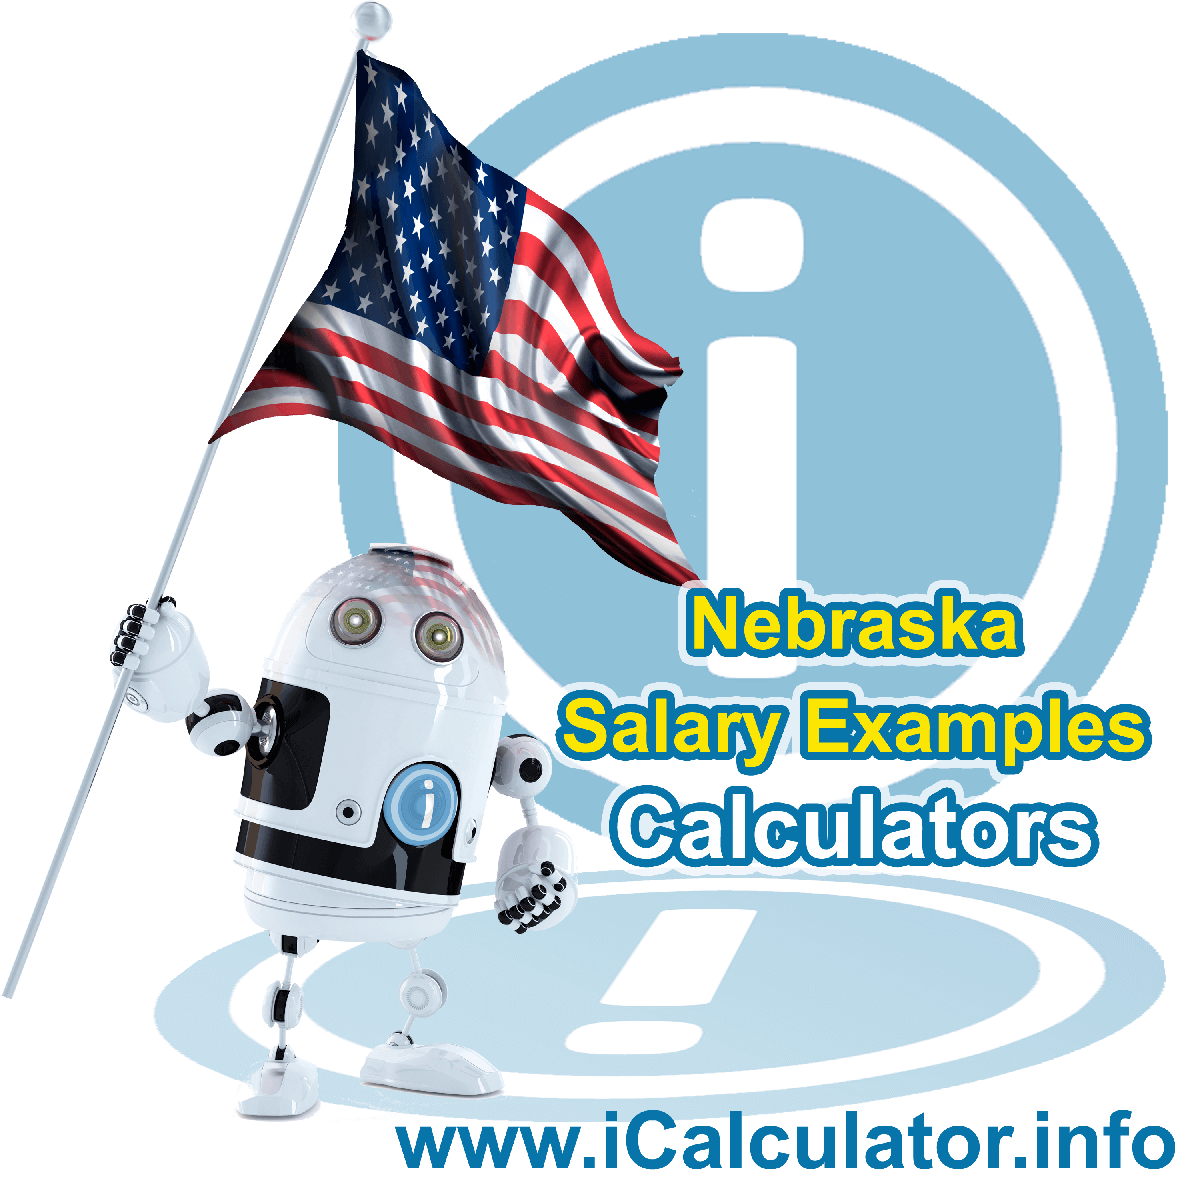 Nebraska Salary Example for $50.00 in 2020 | iCalculator | $50.00 salary example for employee and employer paying Nebraska State tincome taxes. Detailed salary after tax calculation including Nebraska State Tax, Federal State Tax, Medicare Deductions, Social Security, Capital Gains and other income tax and salary deductions complete with supporting Nebraska state tax tables